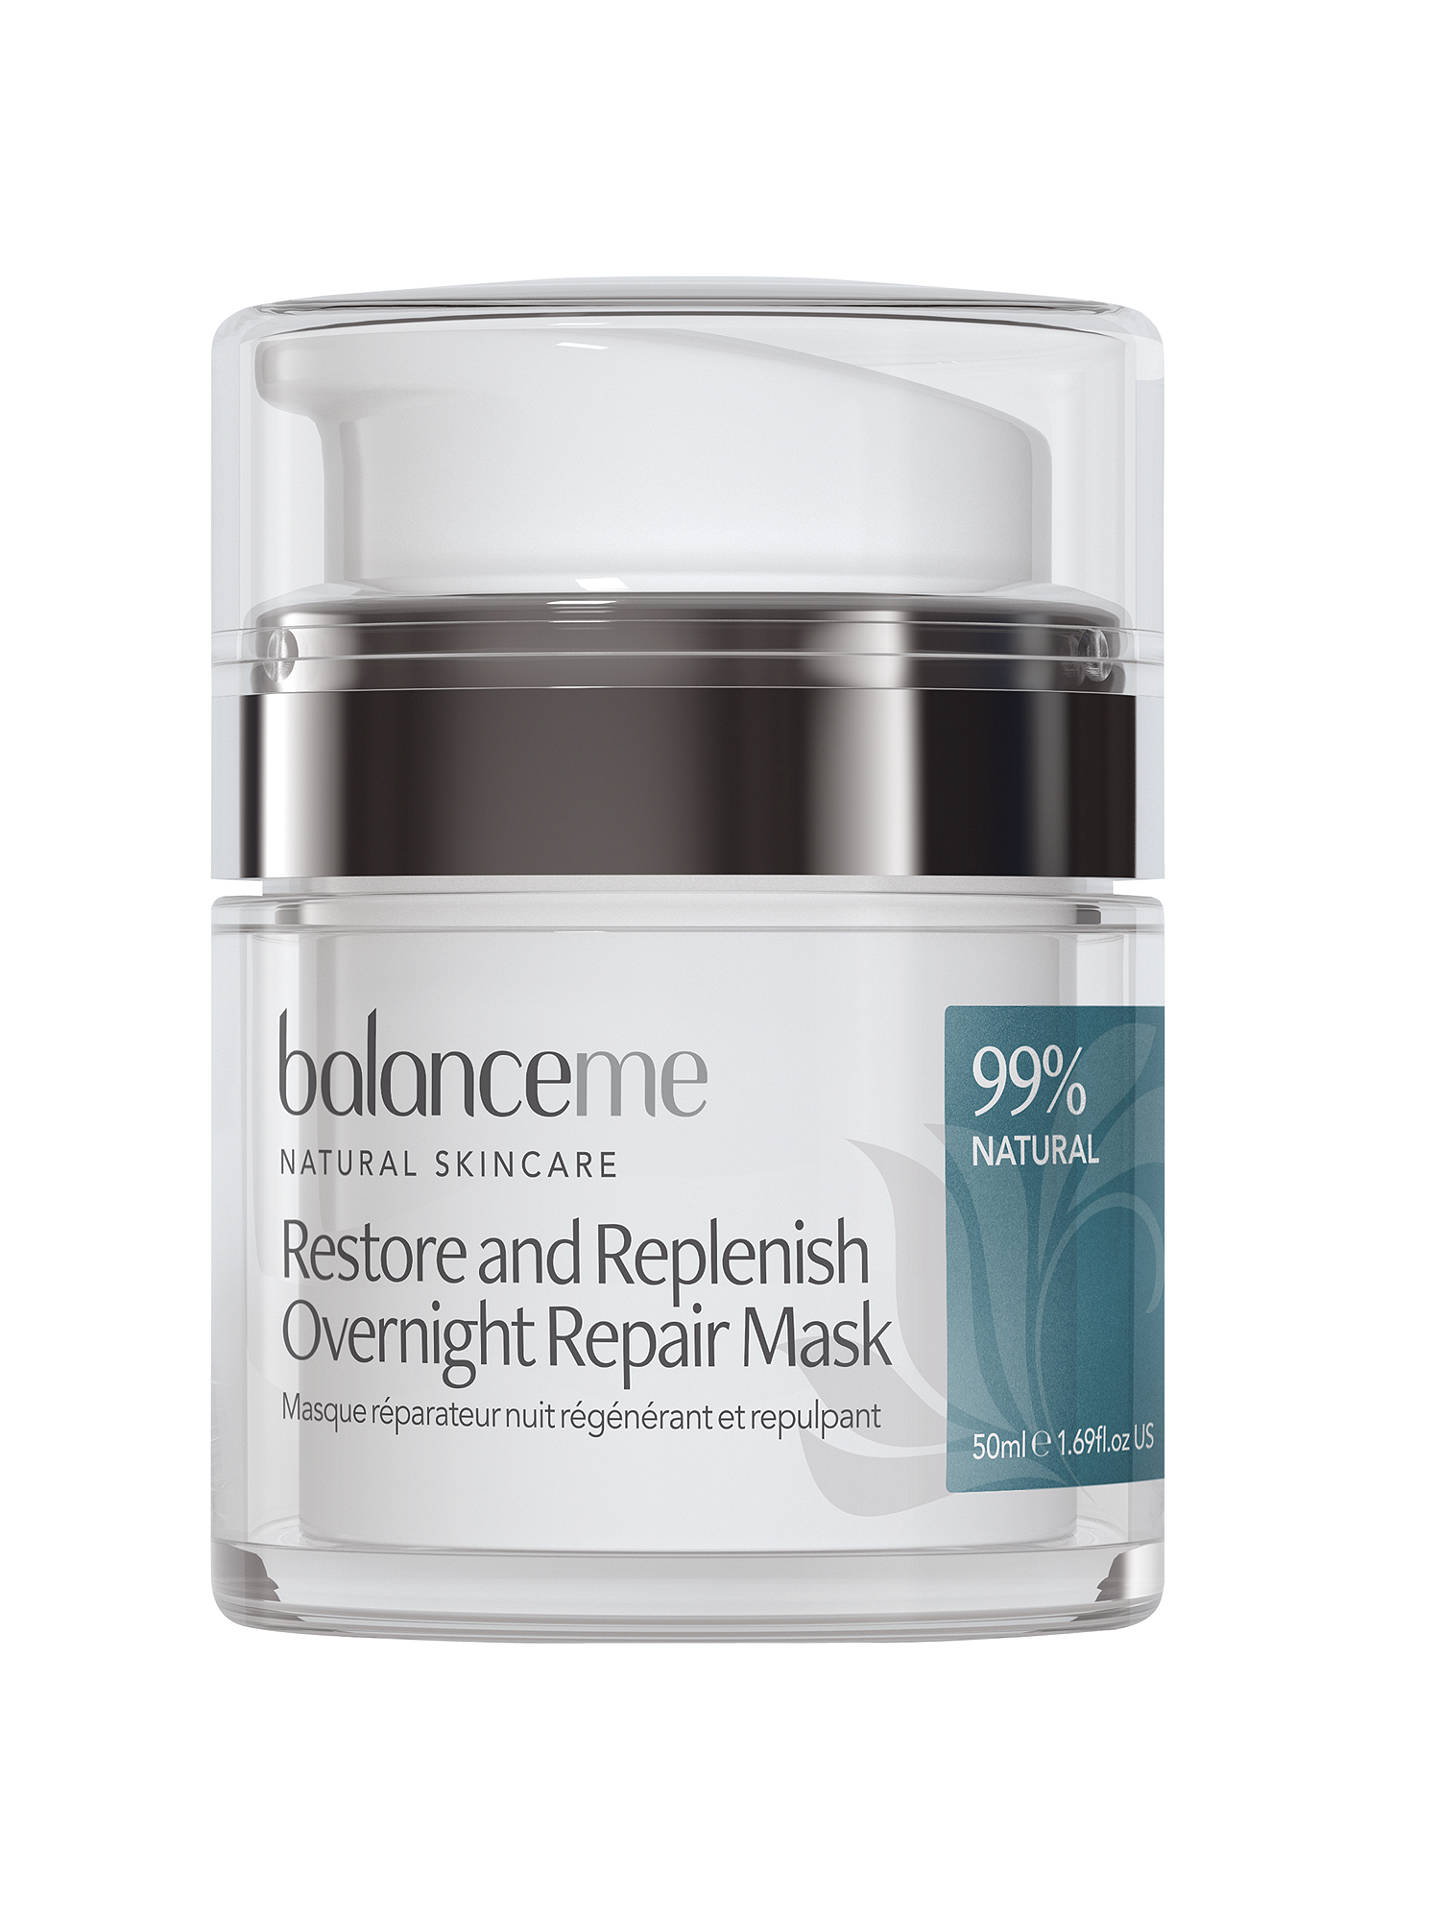 BuyBalance Me Restore And Replenish Overnight Repair Mask, 50ml Online at johnlewis.com